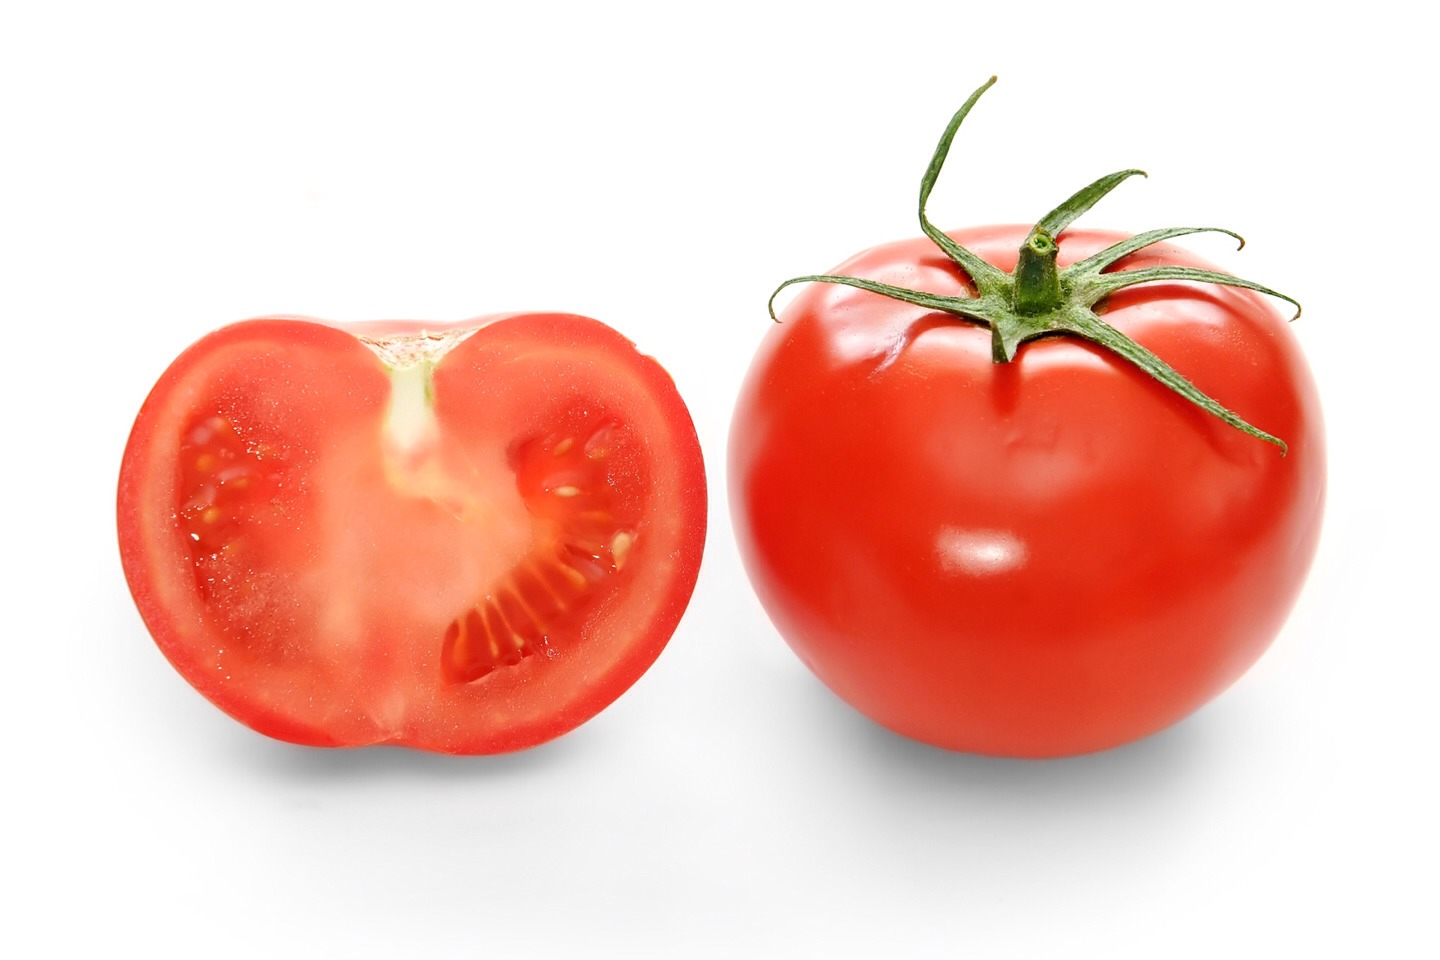 With A Tomato! You slice it in half fry tho openings on both put it on your throat where your tonsils are it'll be extremely hot but it'll work leave it on there lay in bed wrap a towel around the tomatoes and your neck to secure it leave it on for atleast an hour and don't shower till the next day!